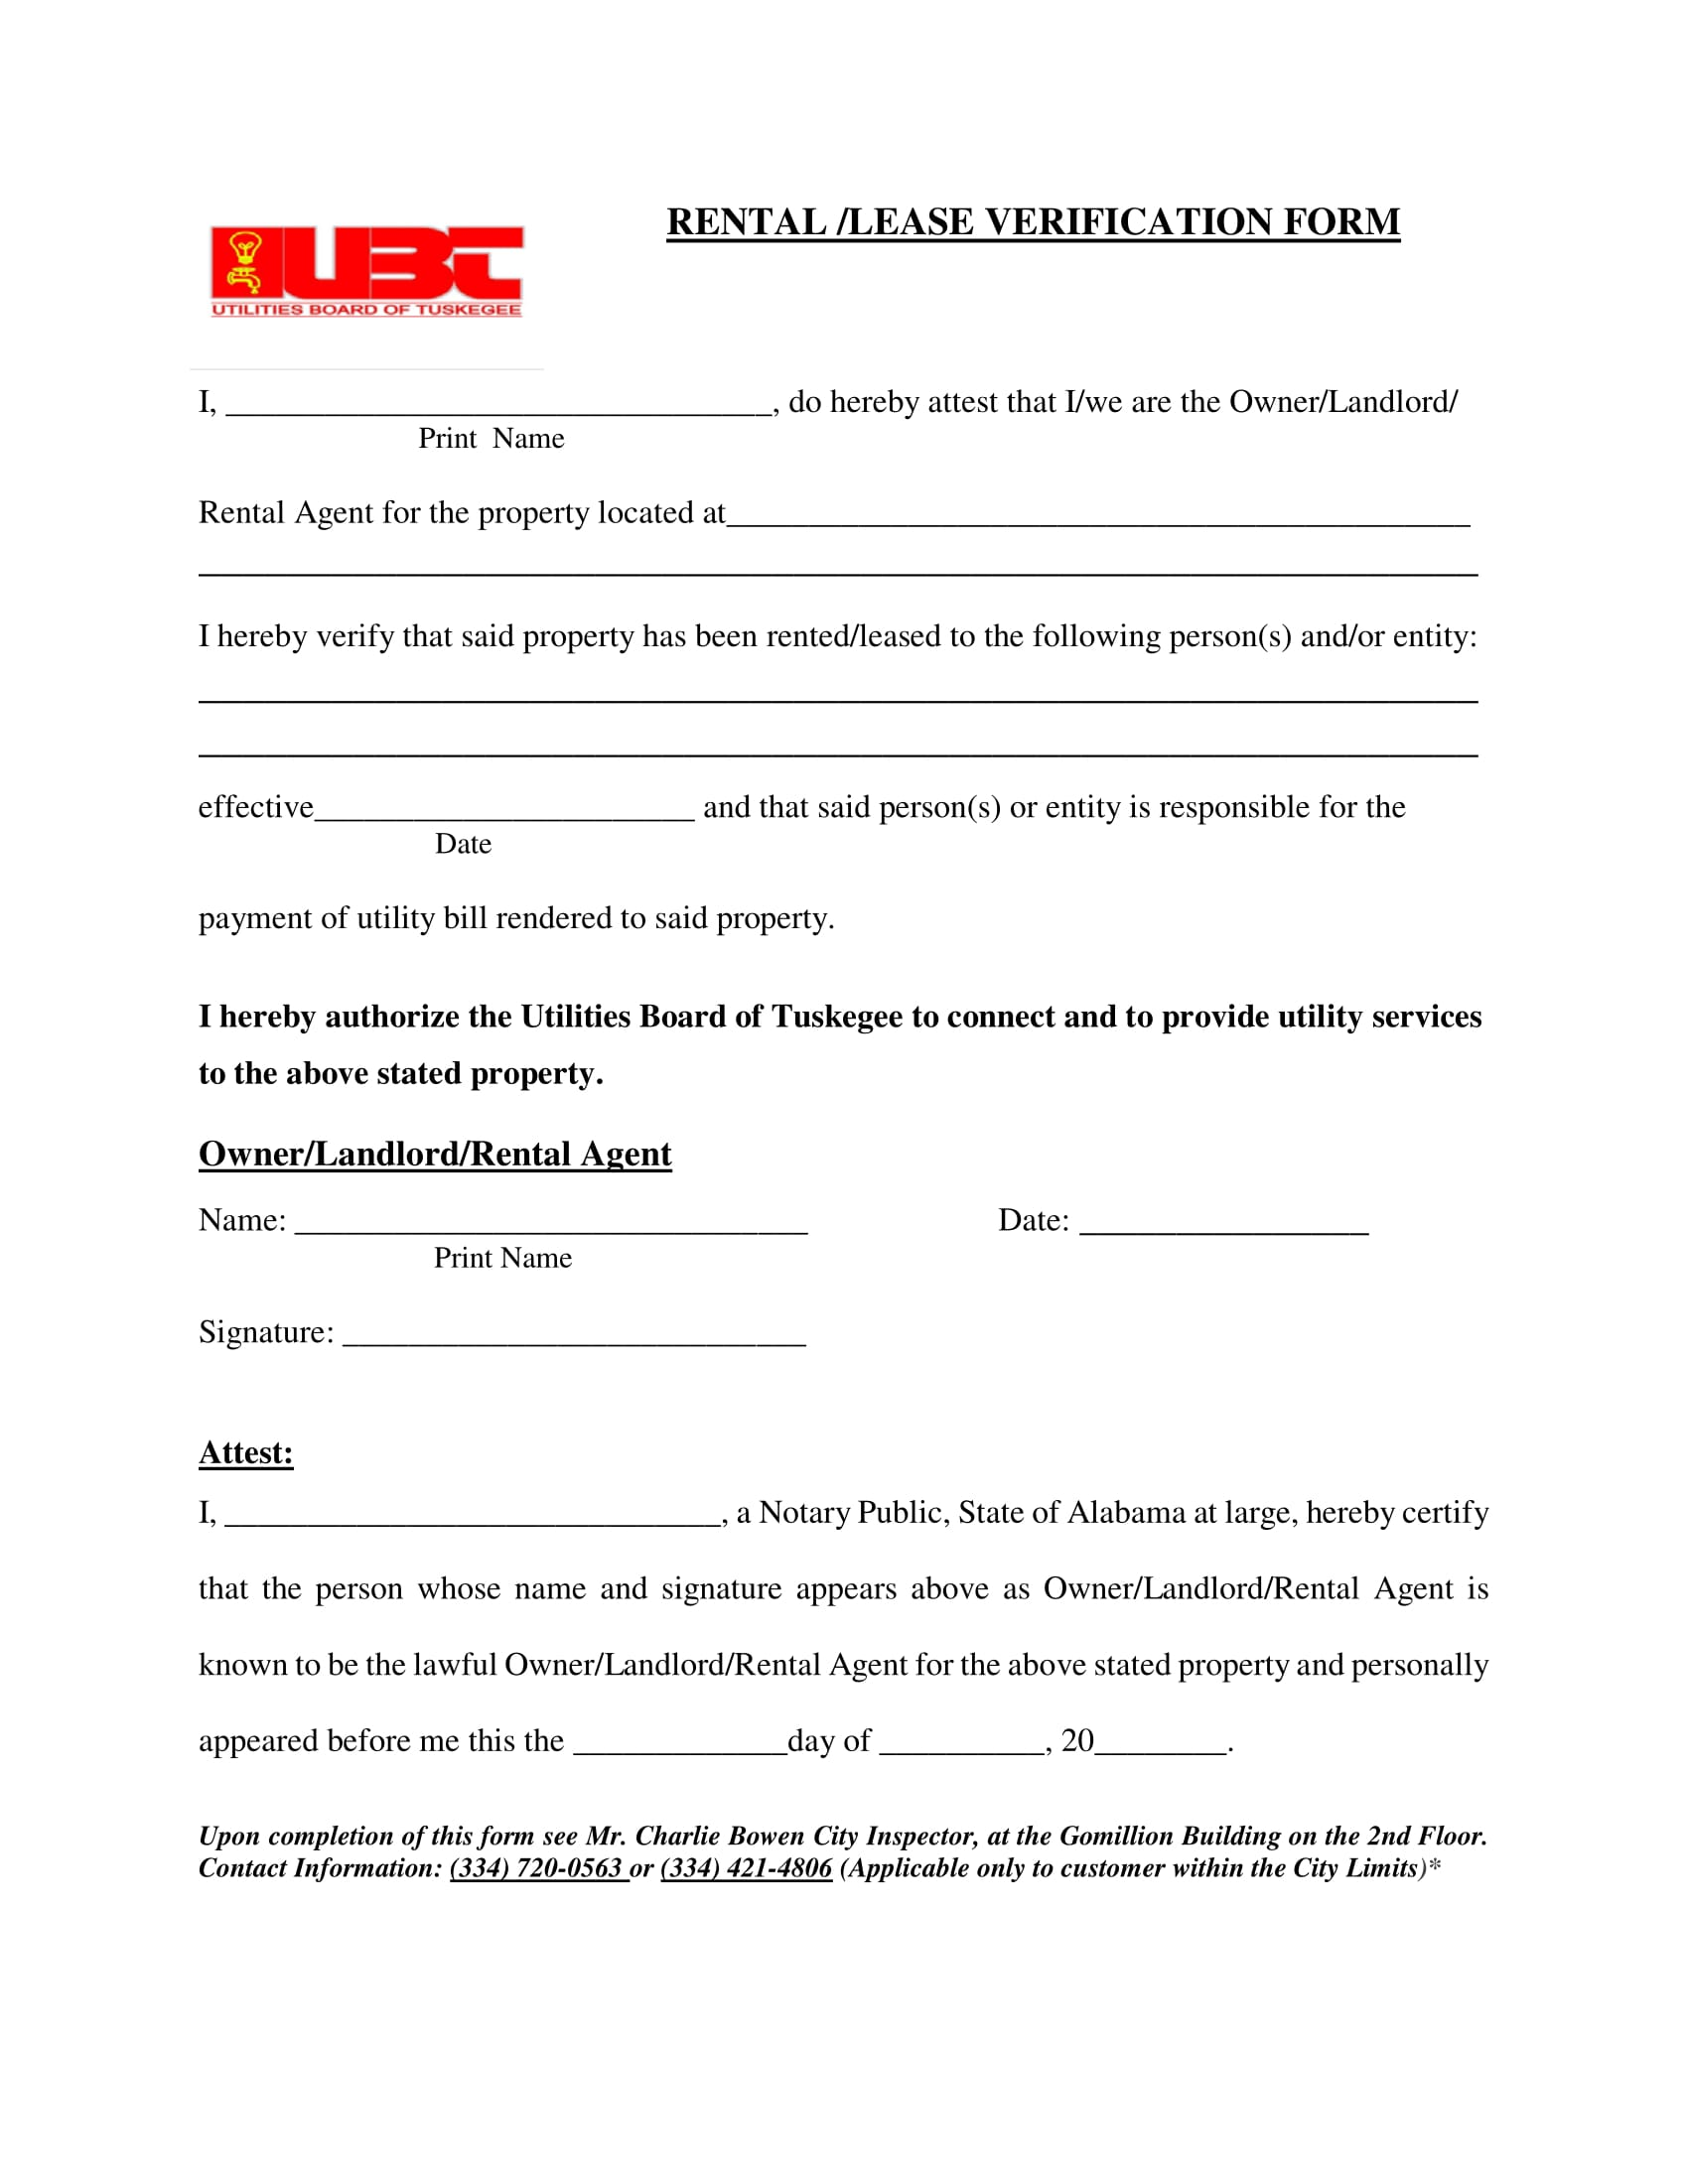 Landlord Verification Form Free Daily Lesson Plan Template